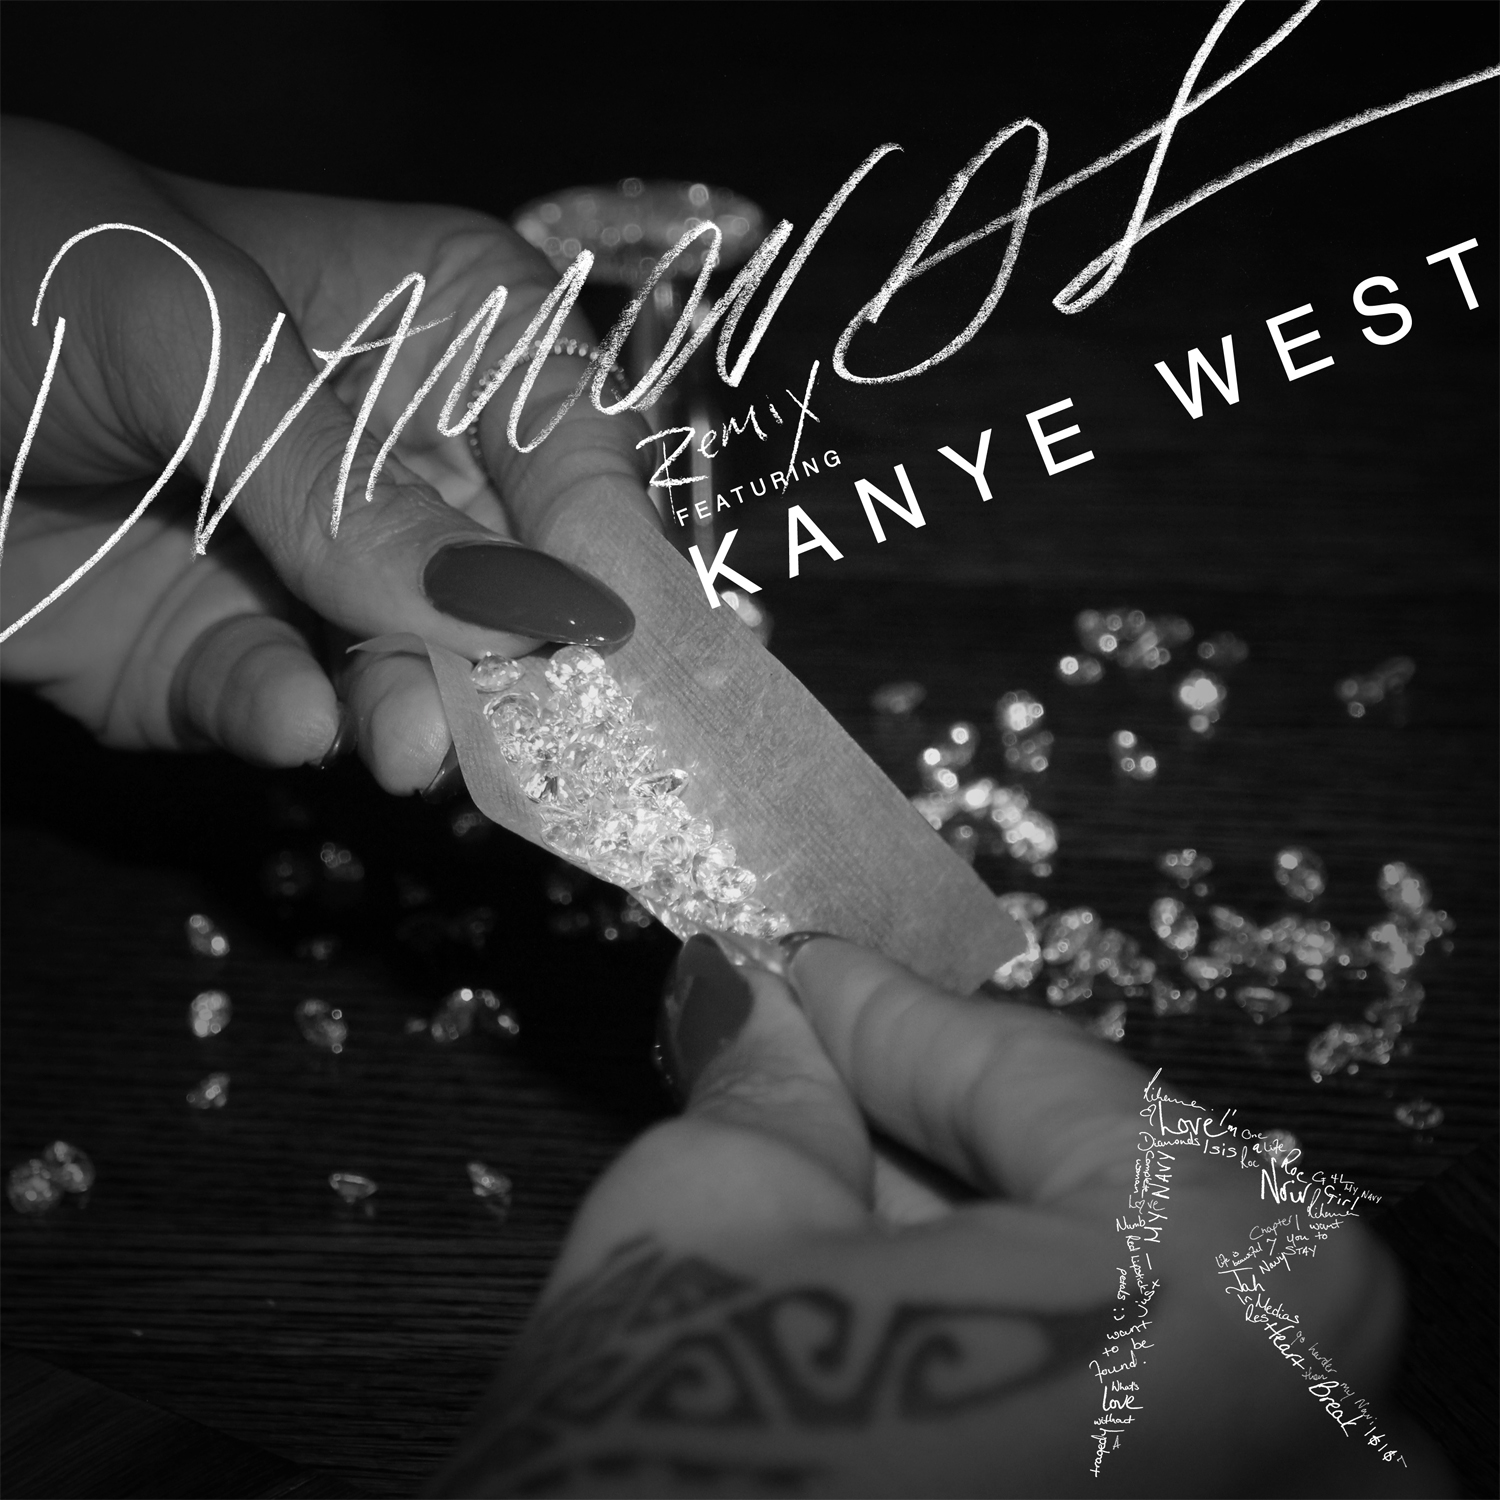 diamonds remix